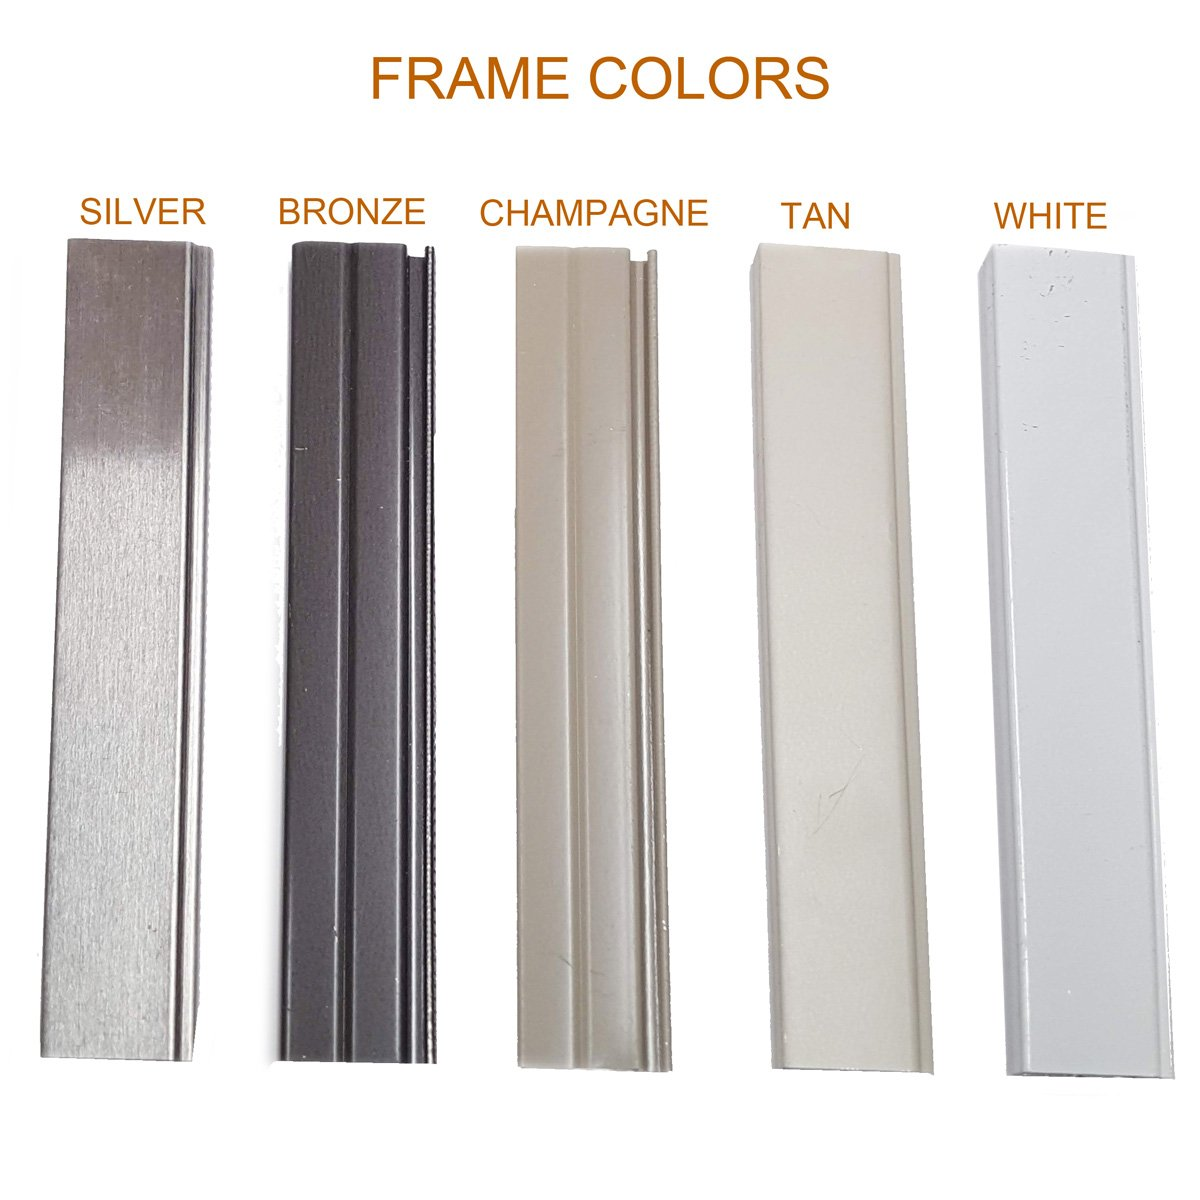 solar screen frame colors